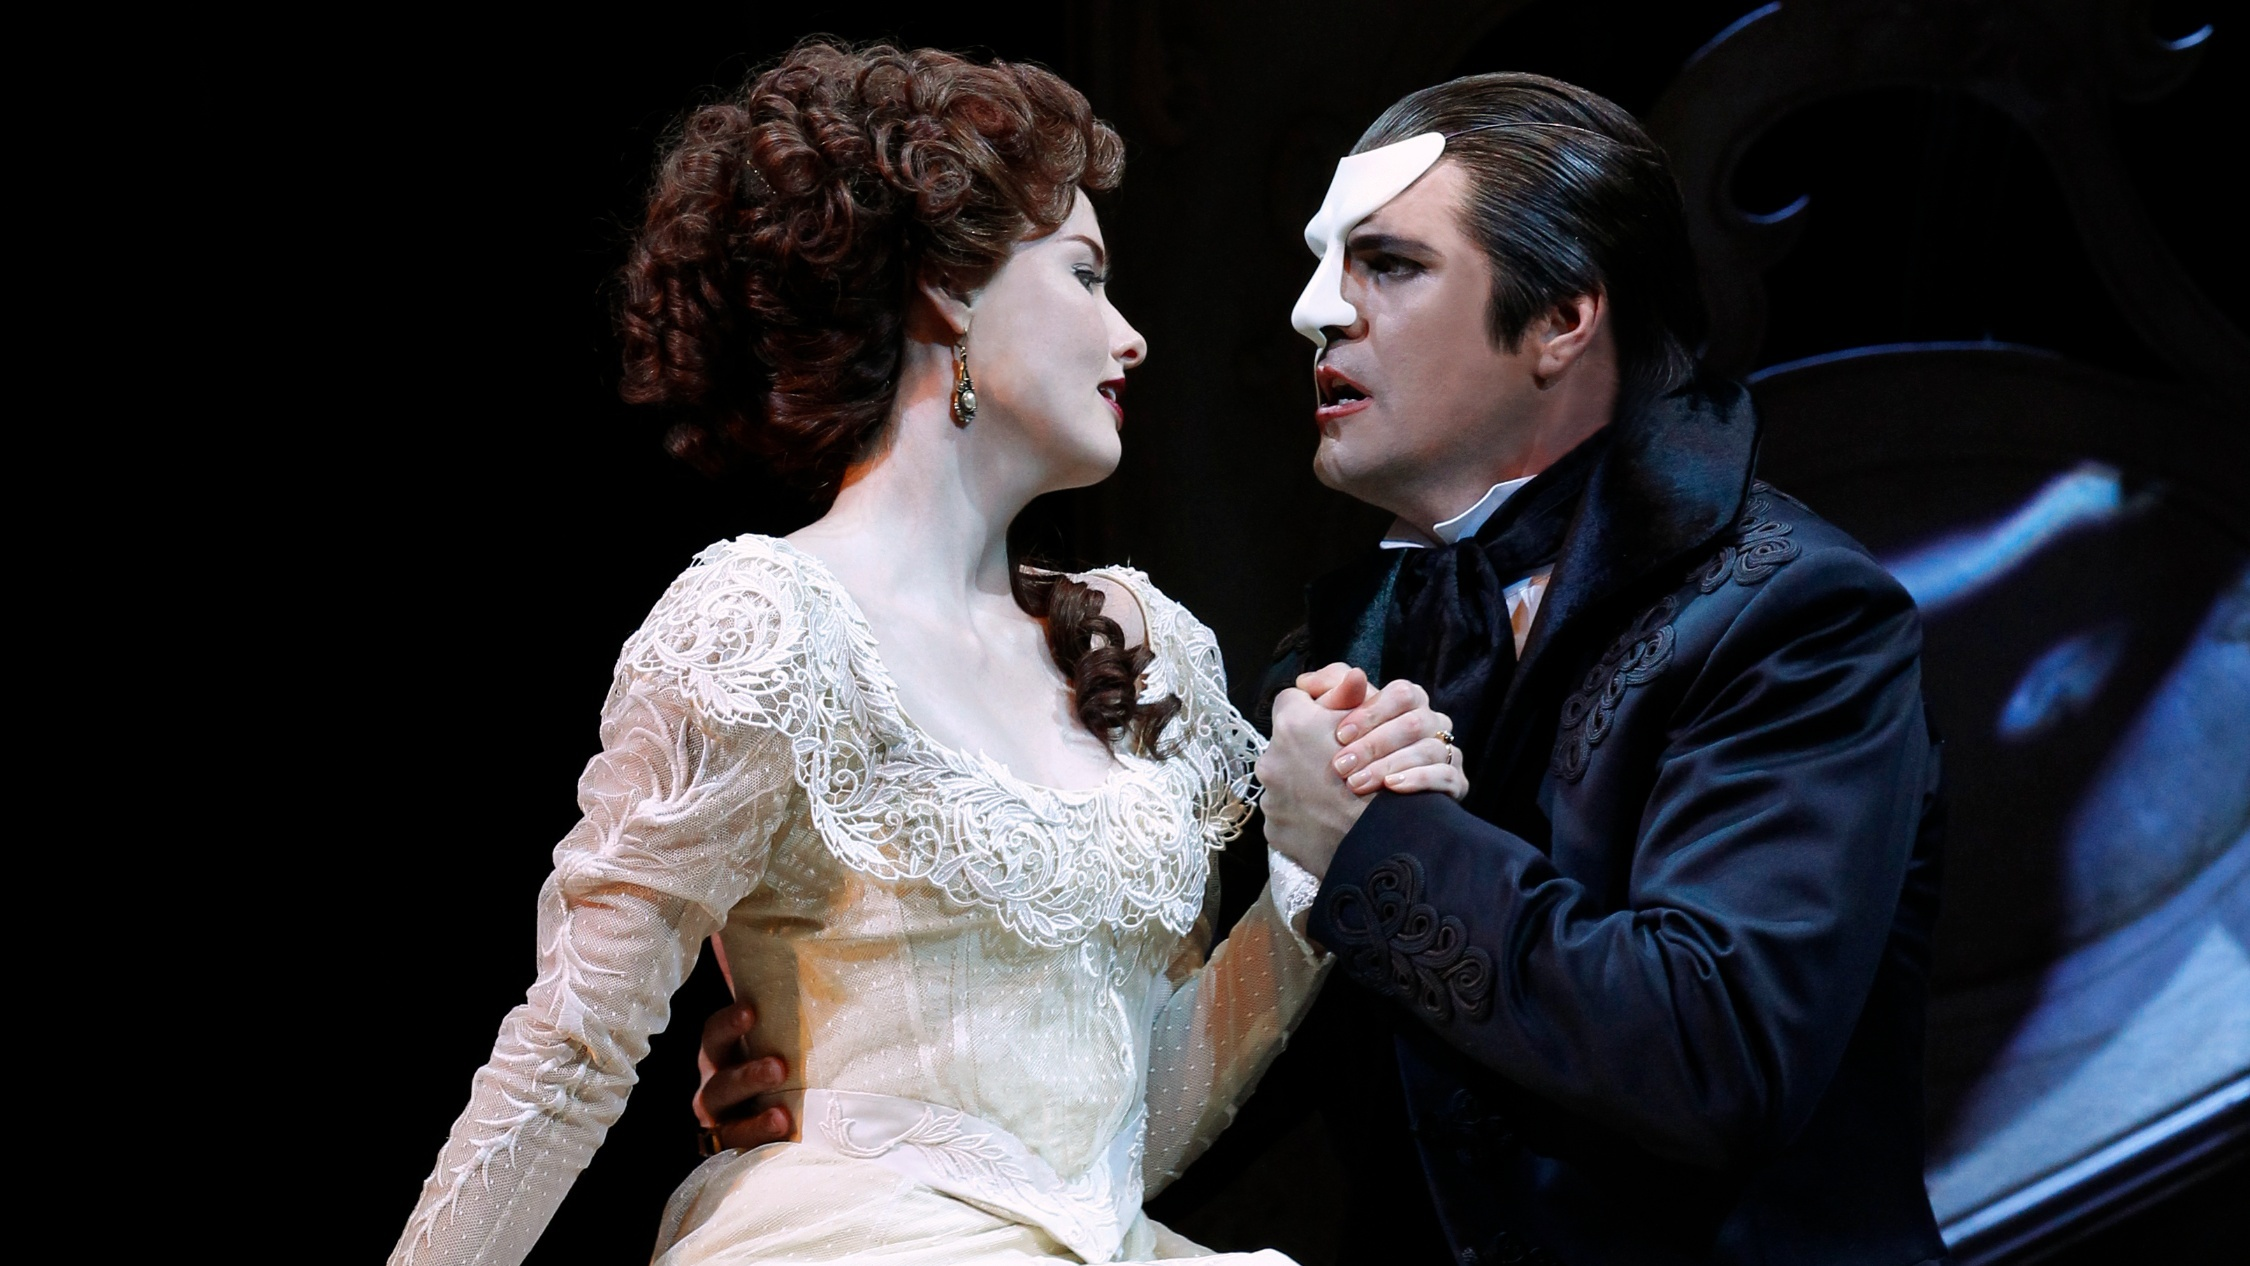 Andrew Lloyd Webber's biggest musicals are now streaming free on YouTube